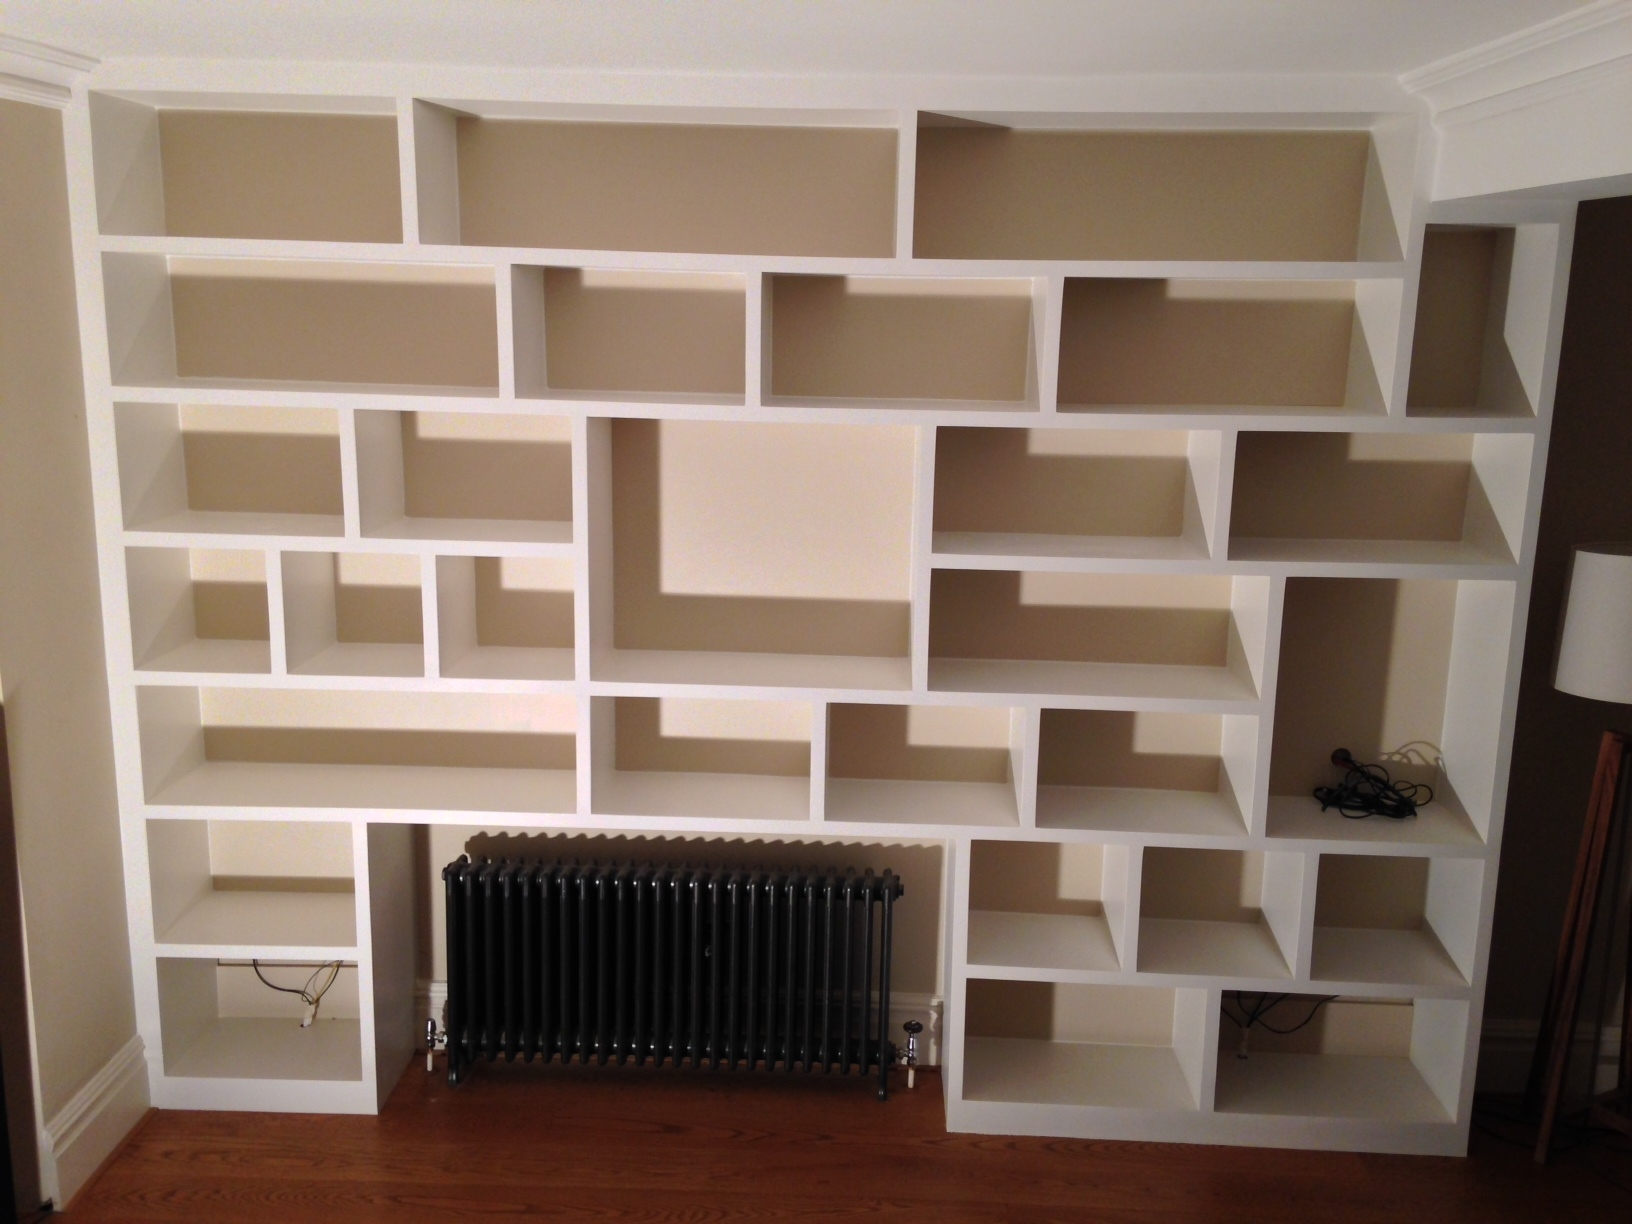 London Custom Carpenters With Regard To Bespoke Shelving (#13 of 15)